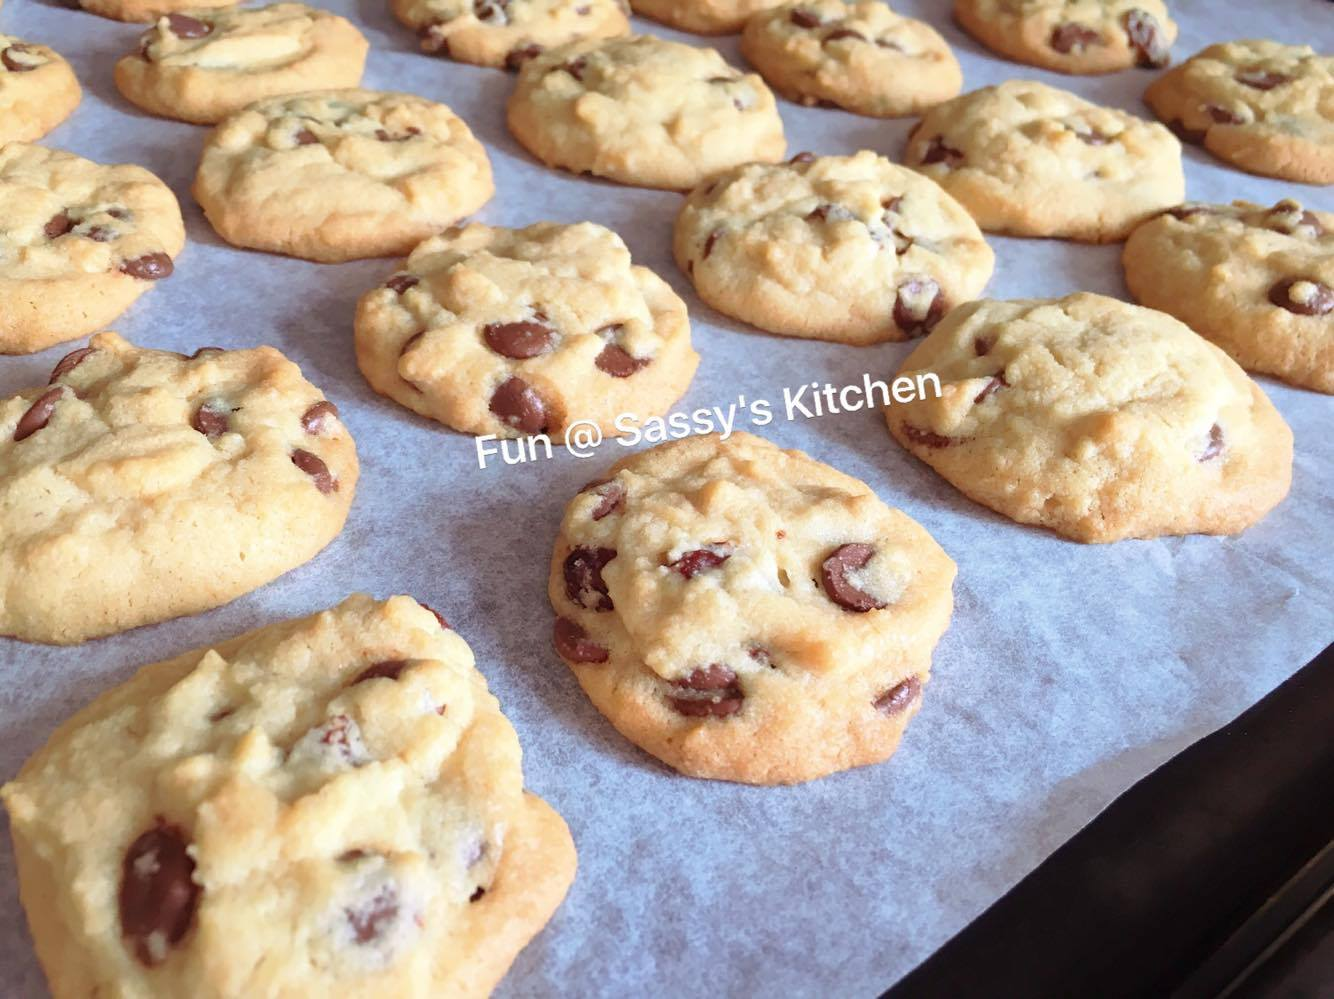 famous amos cookies research paper Amos research paper amos research paper (100 points) introduction: this paper will require you to do some in depth research on some historical issues concerning the biblical book of amos please follow the outline very carefully do not skip any sections or your grade will be reduced.